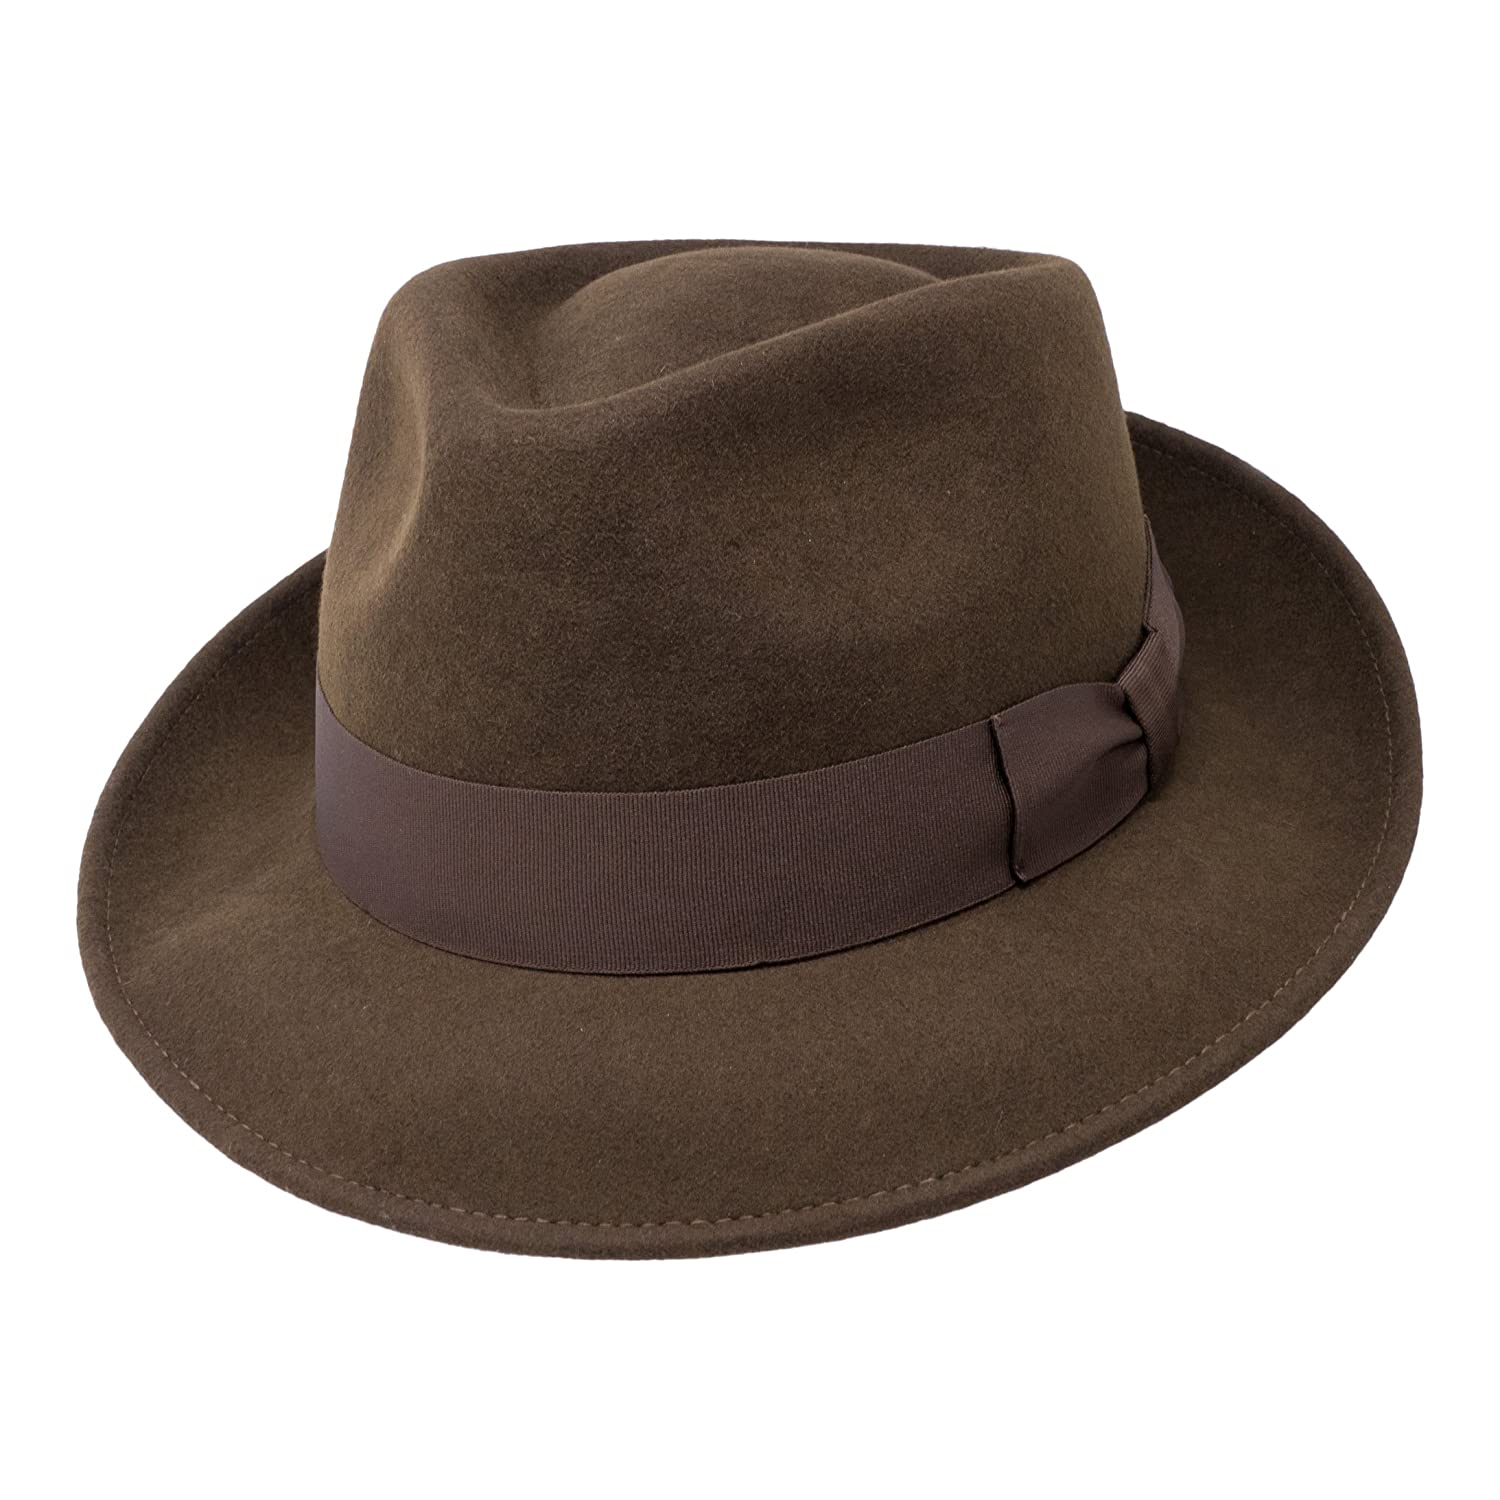 1940s Mens Hats | Fedora, Homburg, Pork Pie Hats Borges & Scott B&S Premium Doyle - Teardrop Fedora Hat - 100% Wool Felt - Crushable for Travel - Water Resistant - Unisex £34.95 AT vintagedancer.com